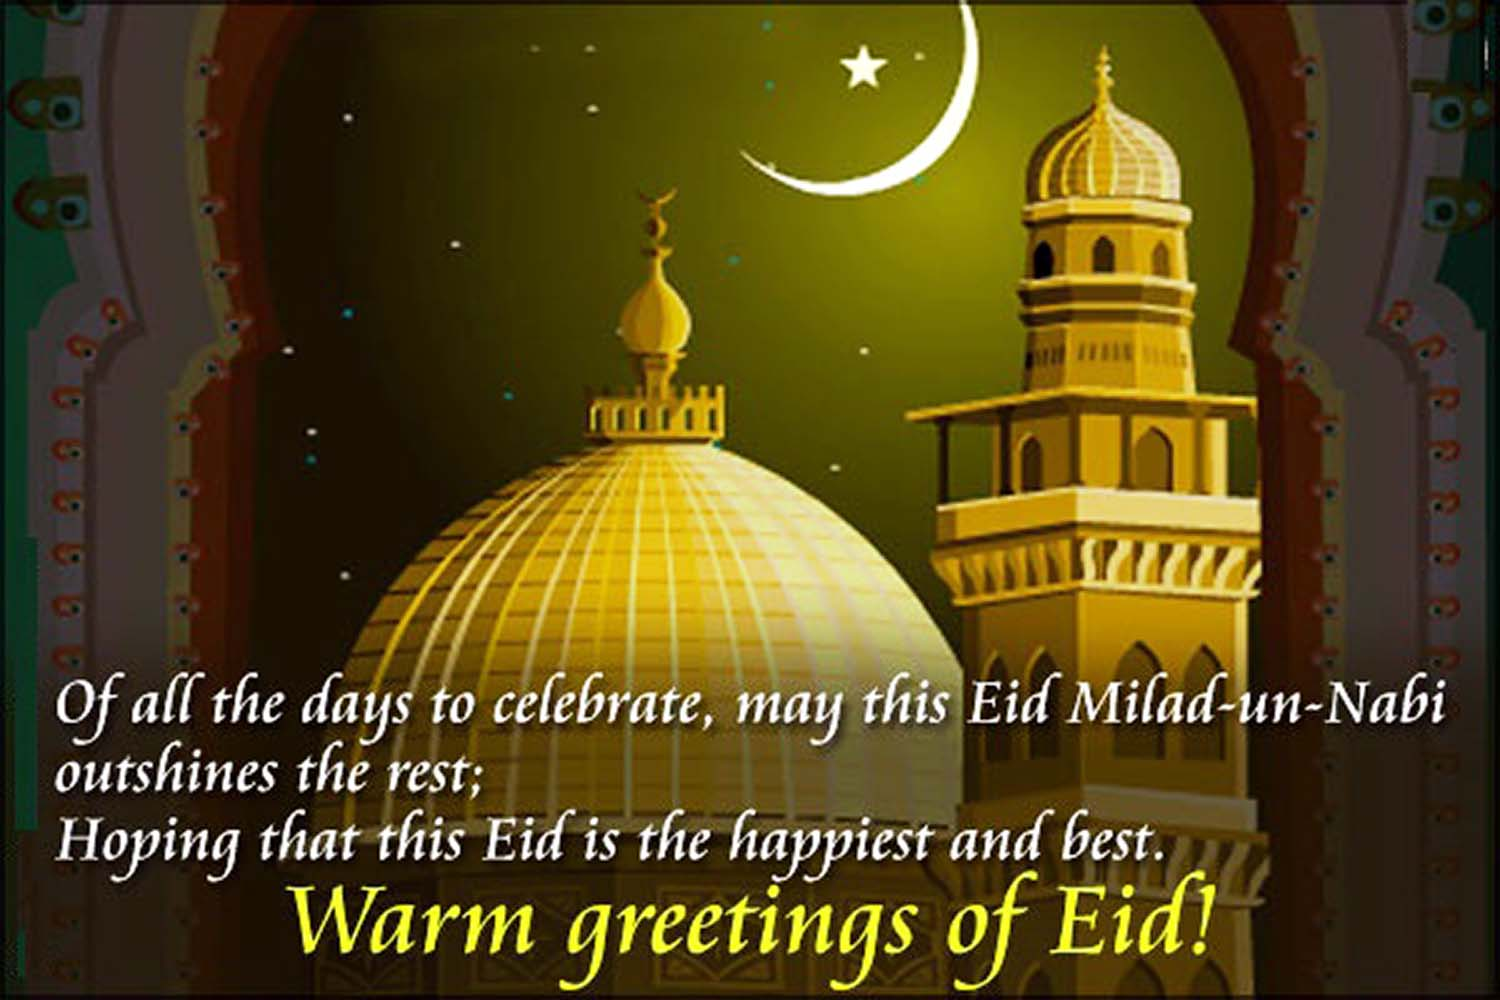 eid milad greetings in english